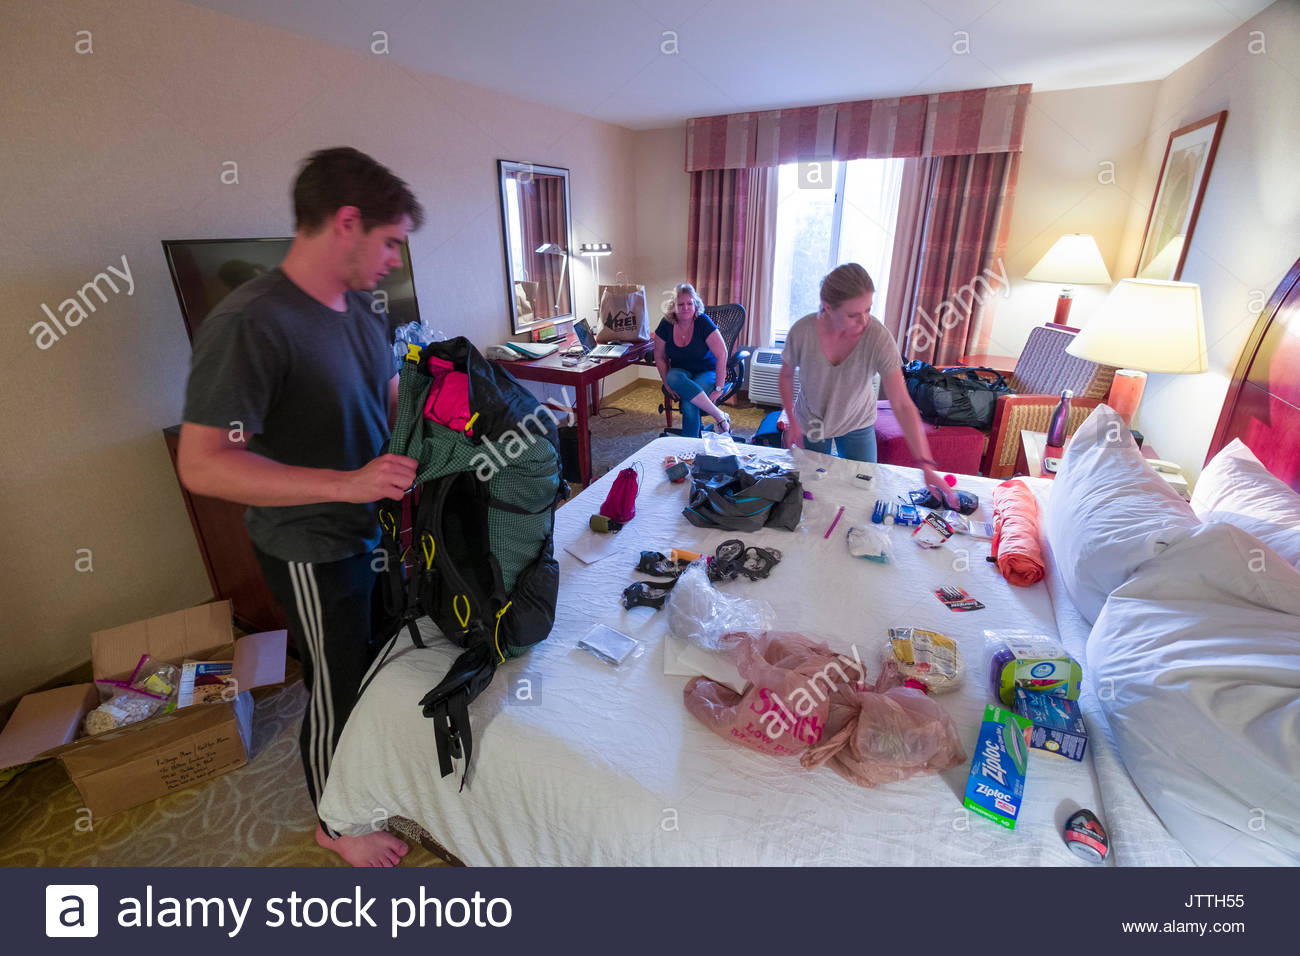 Young man and woman sorting backpacking gear on bed in hotel room before embarking on a five month journey hiking the Pacific Crest Trail, USA - Stock Image